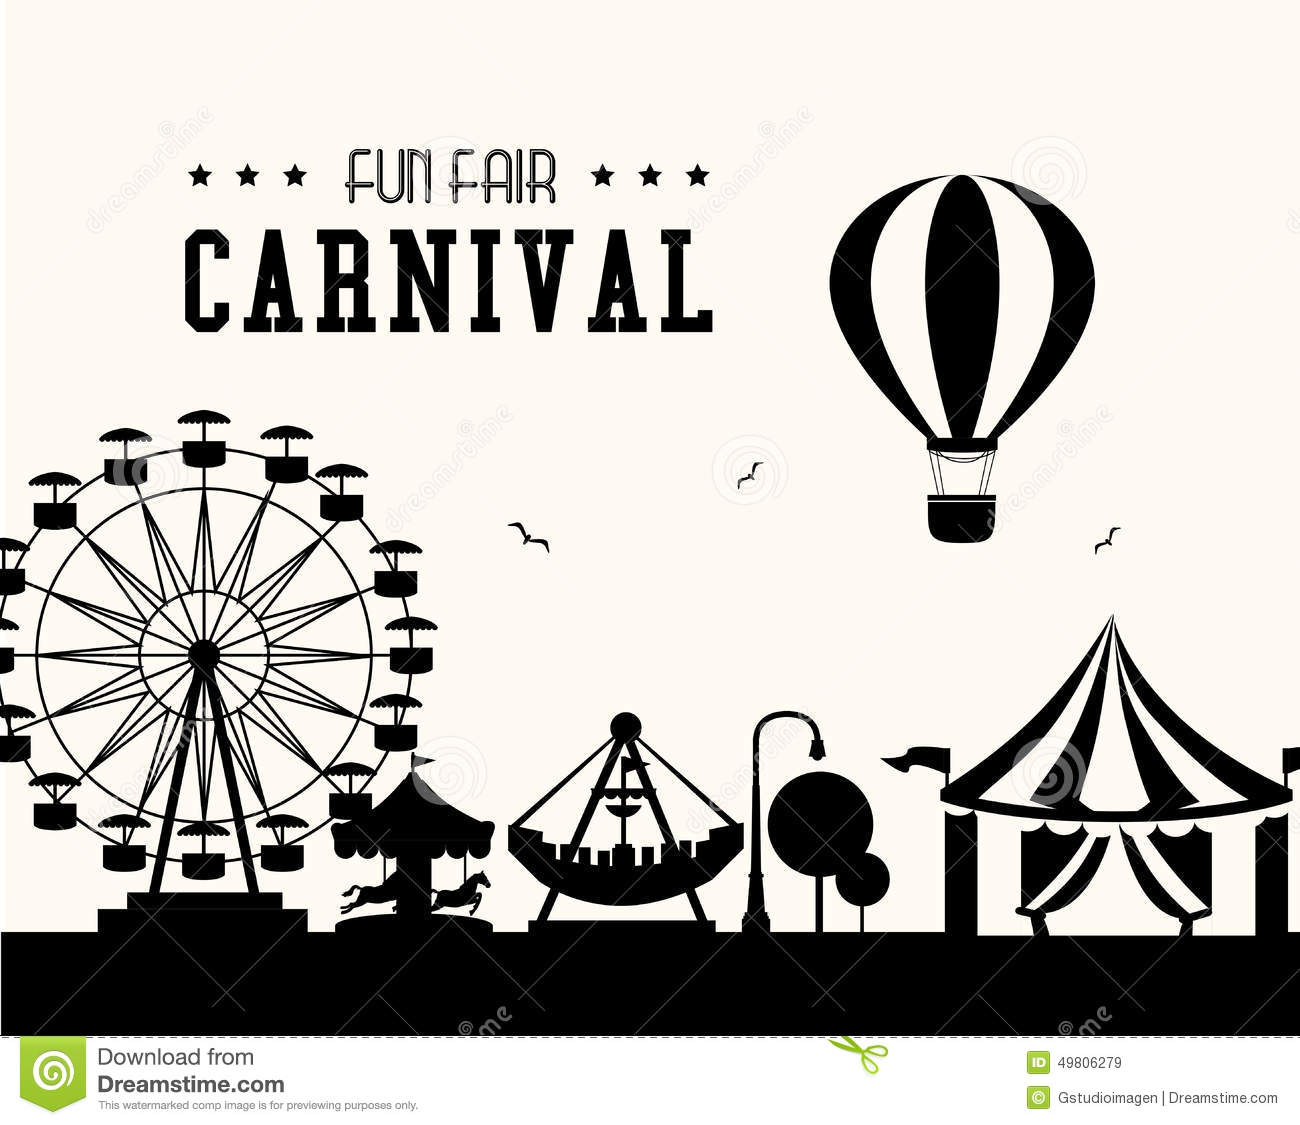 Carnival clipart black and white 3 » Clipart Station.